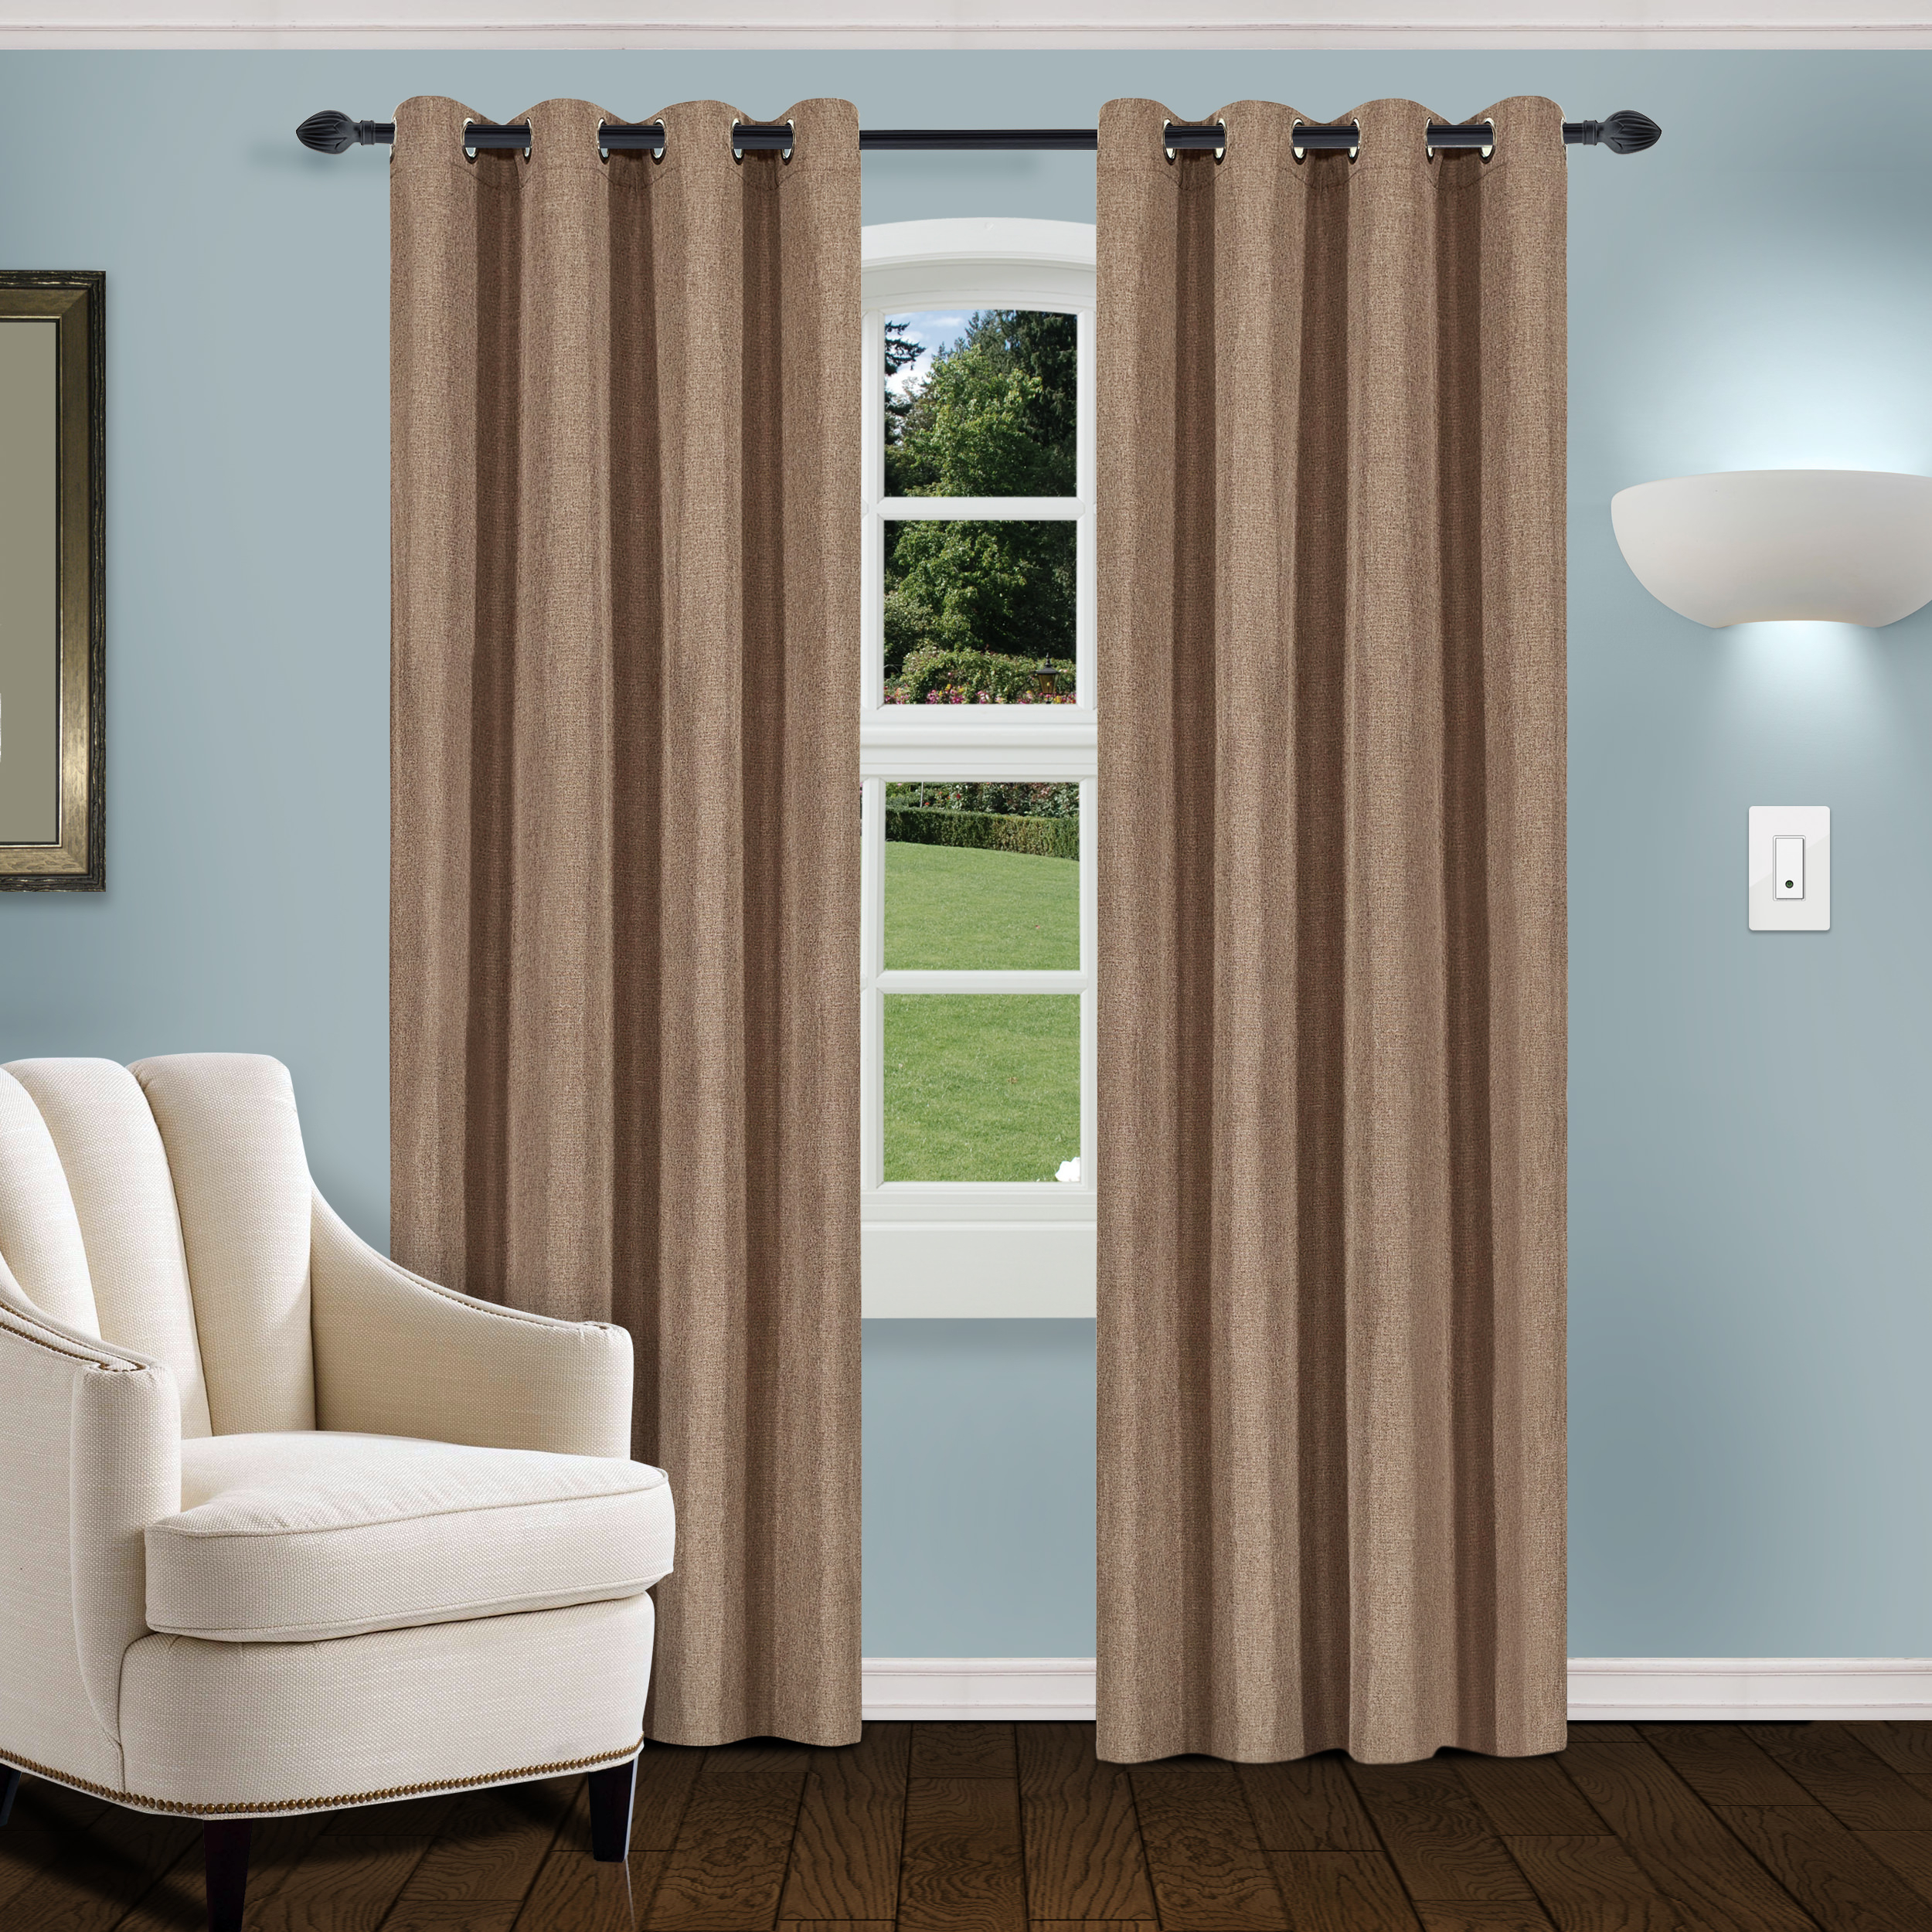 Superior Linen Textured Blackout Curtain Set Of 2 With Grommet Top Header For Thermal Textured Linen Grommet Top Curtain Panel Pairs (View 15 of 30)